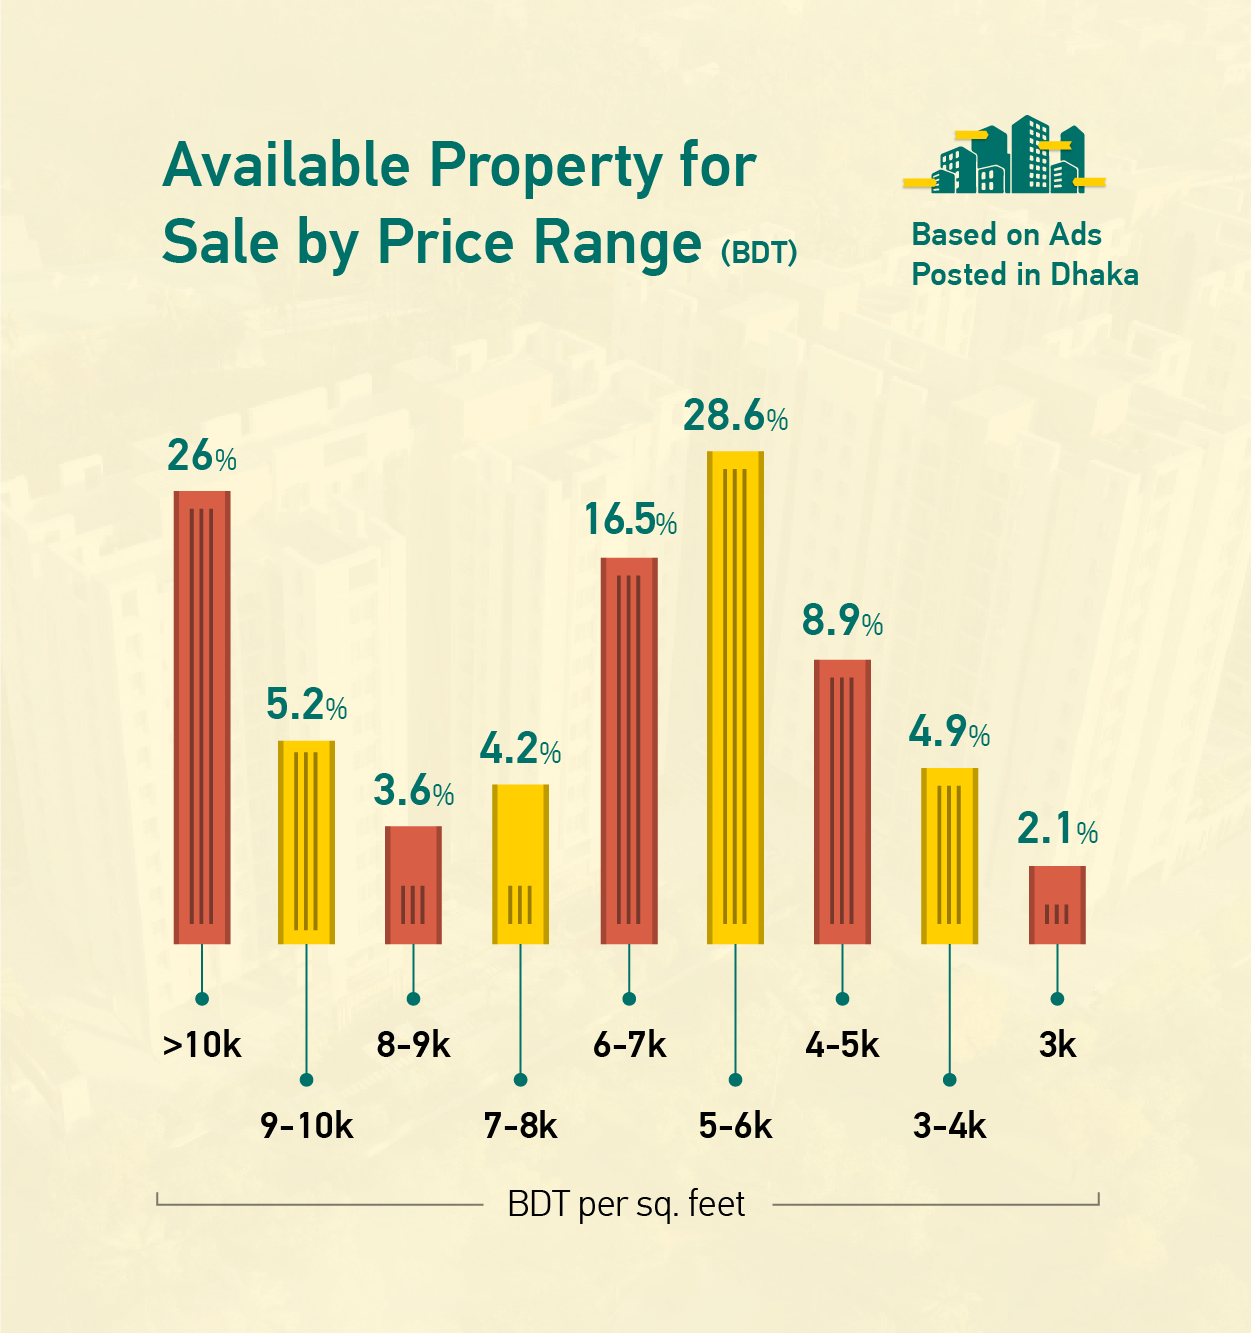 Available Property for Sale by Price Range